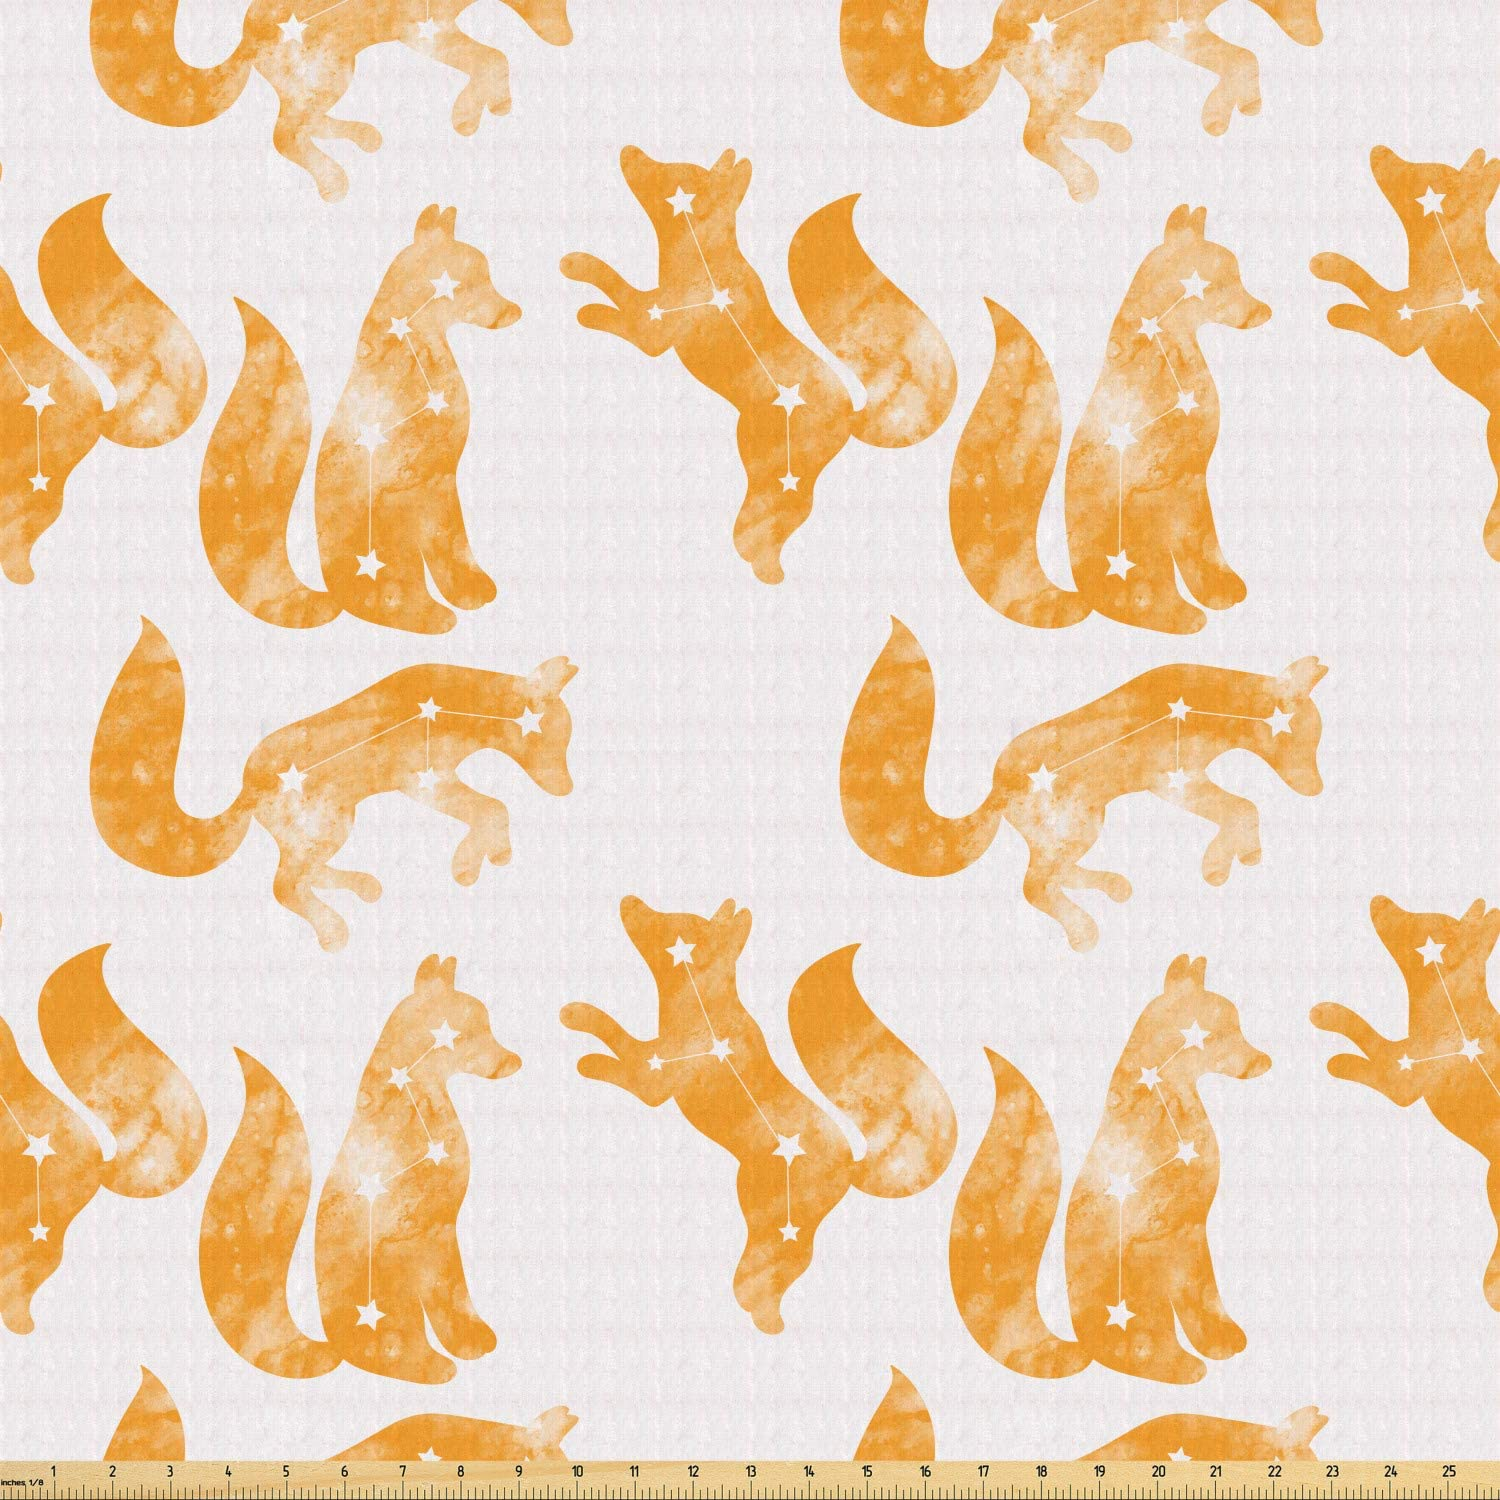 Lunarable Fabric by The Yard, Stretch Knit Fabric for Clothing Sewing and Arts Crafts, 1 Yard, Orange White